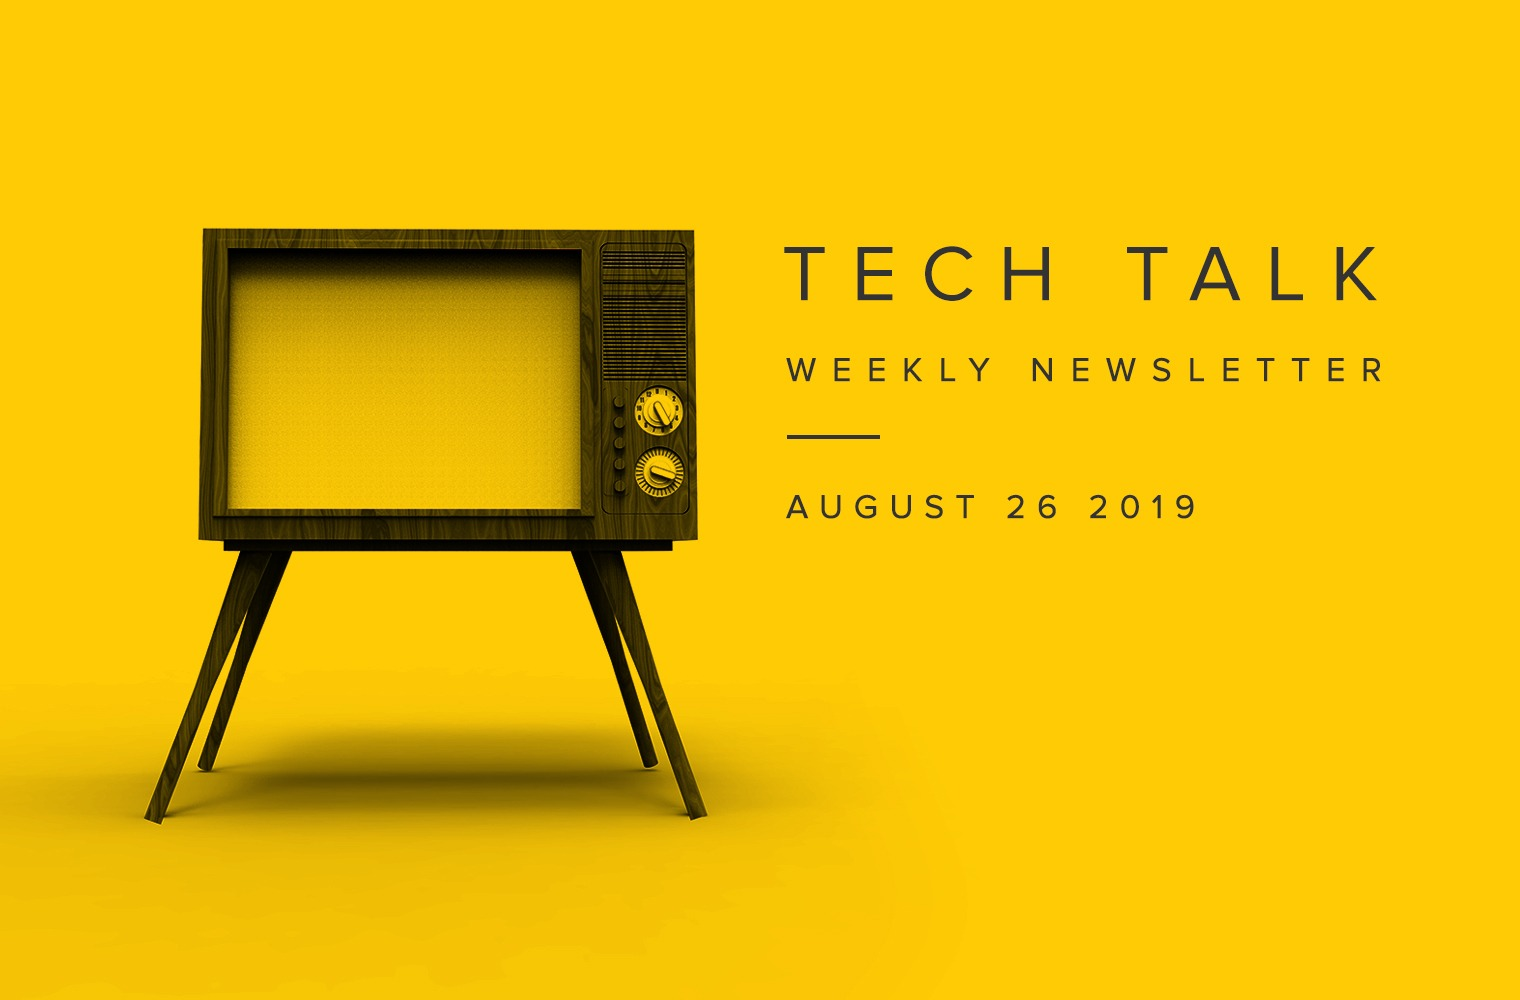 EMPIST Tech Talk Weekly Newsletter: Monday, August 26, 2019